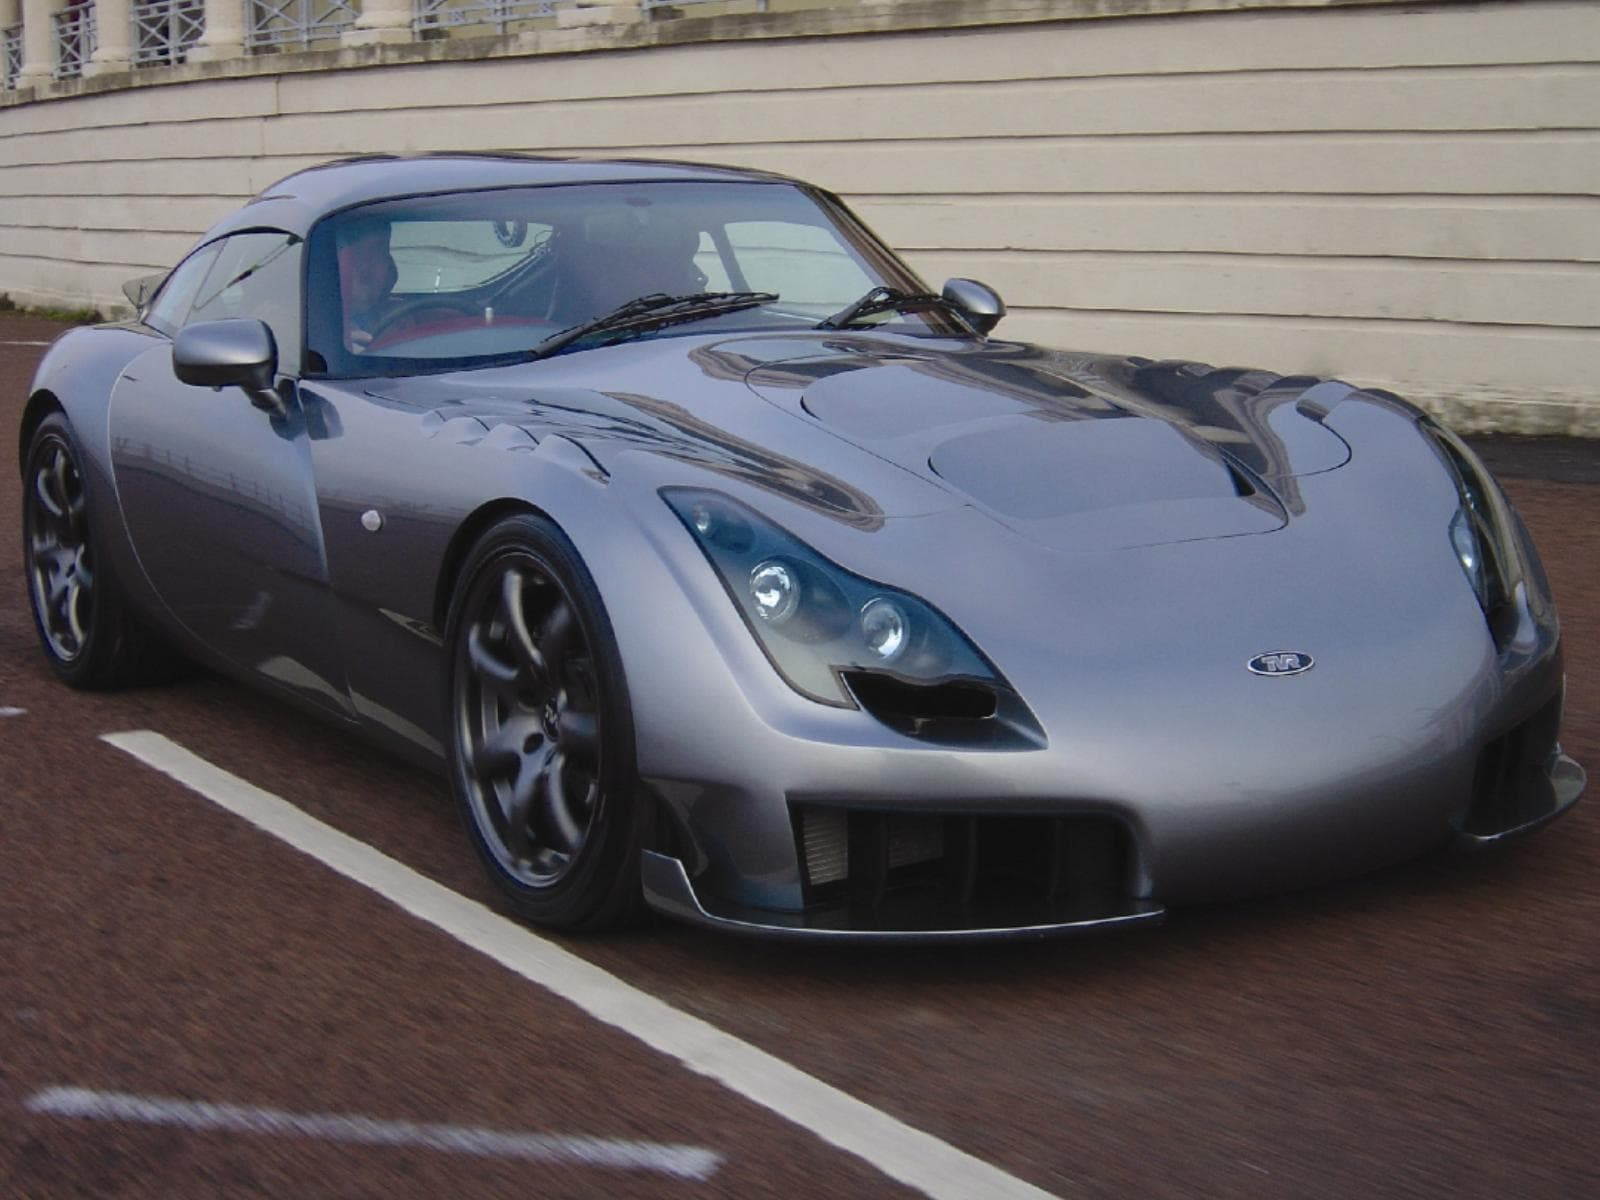 2005 TVR Sagaris Wallpaper